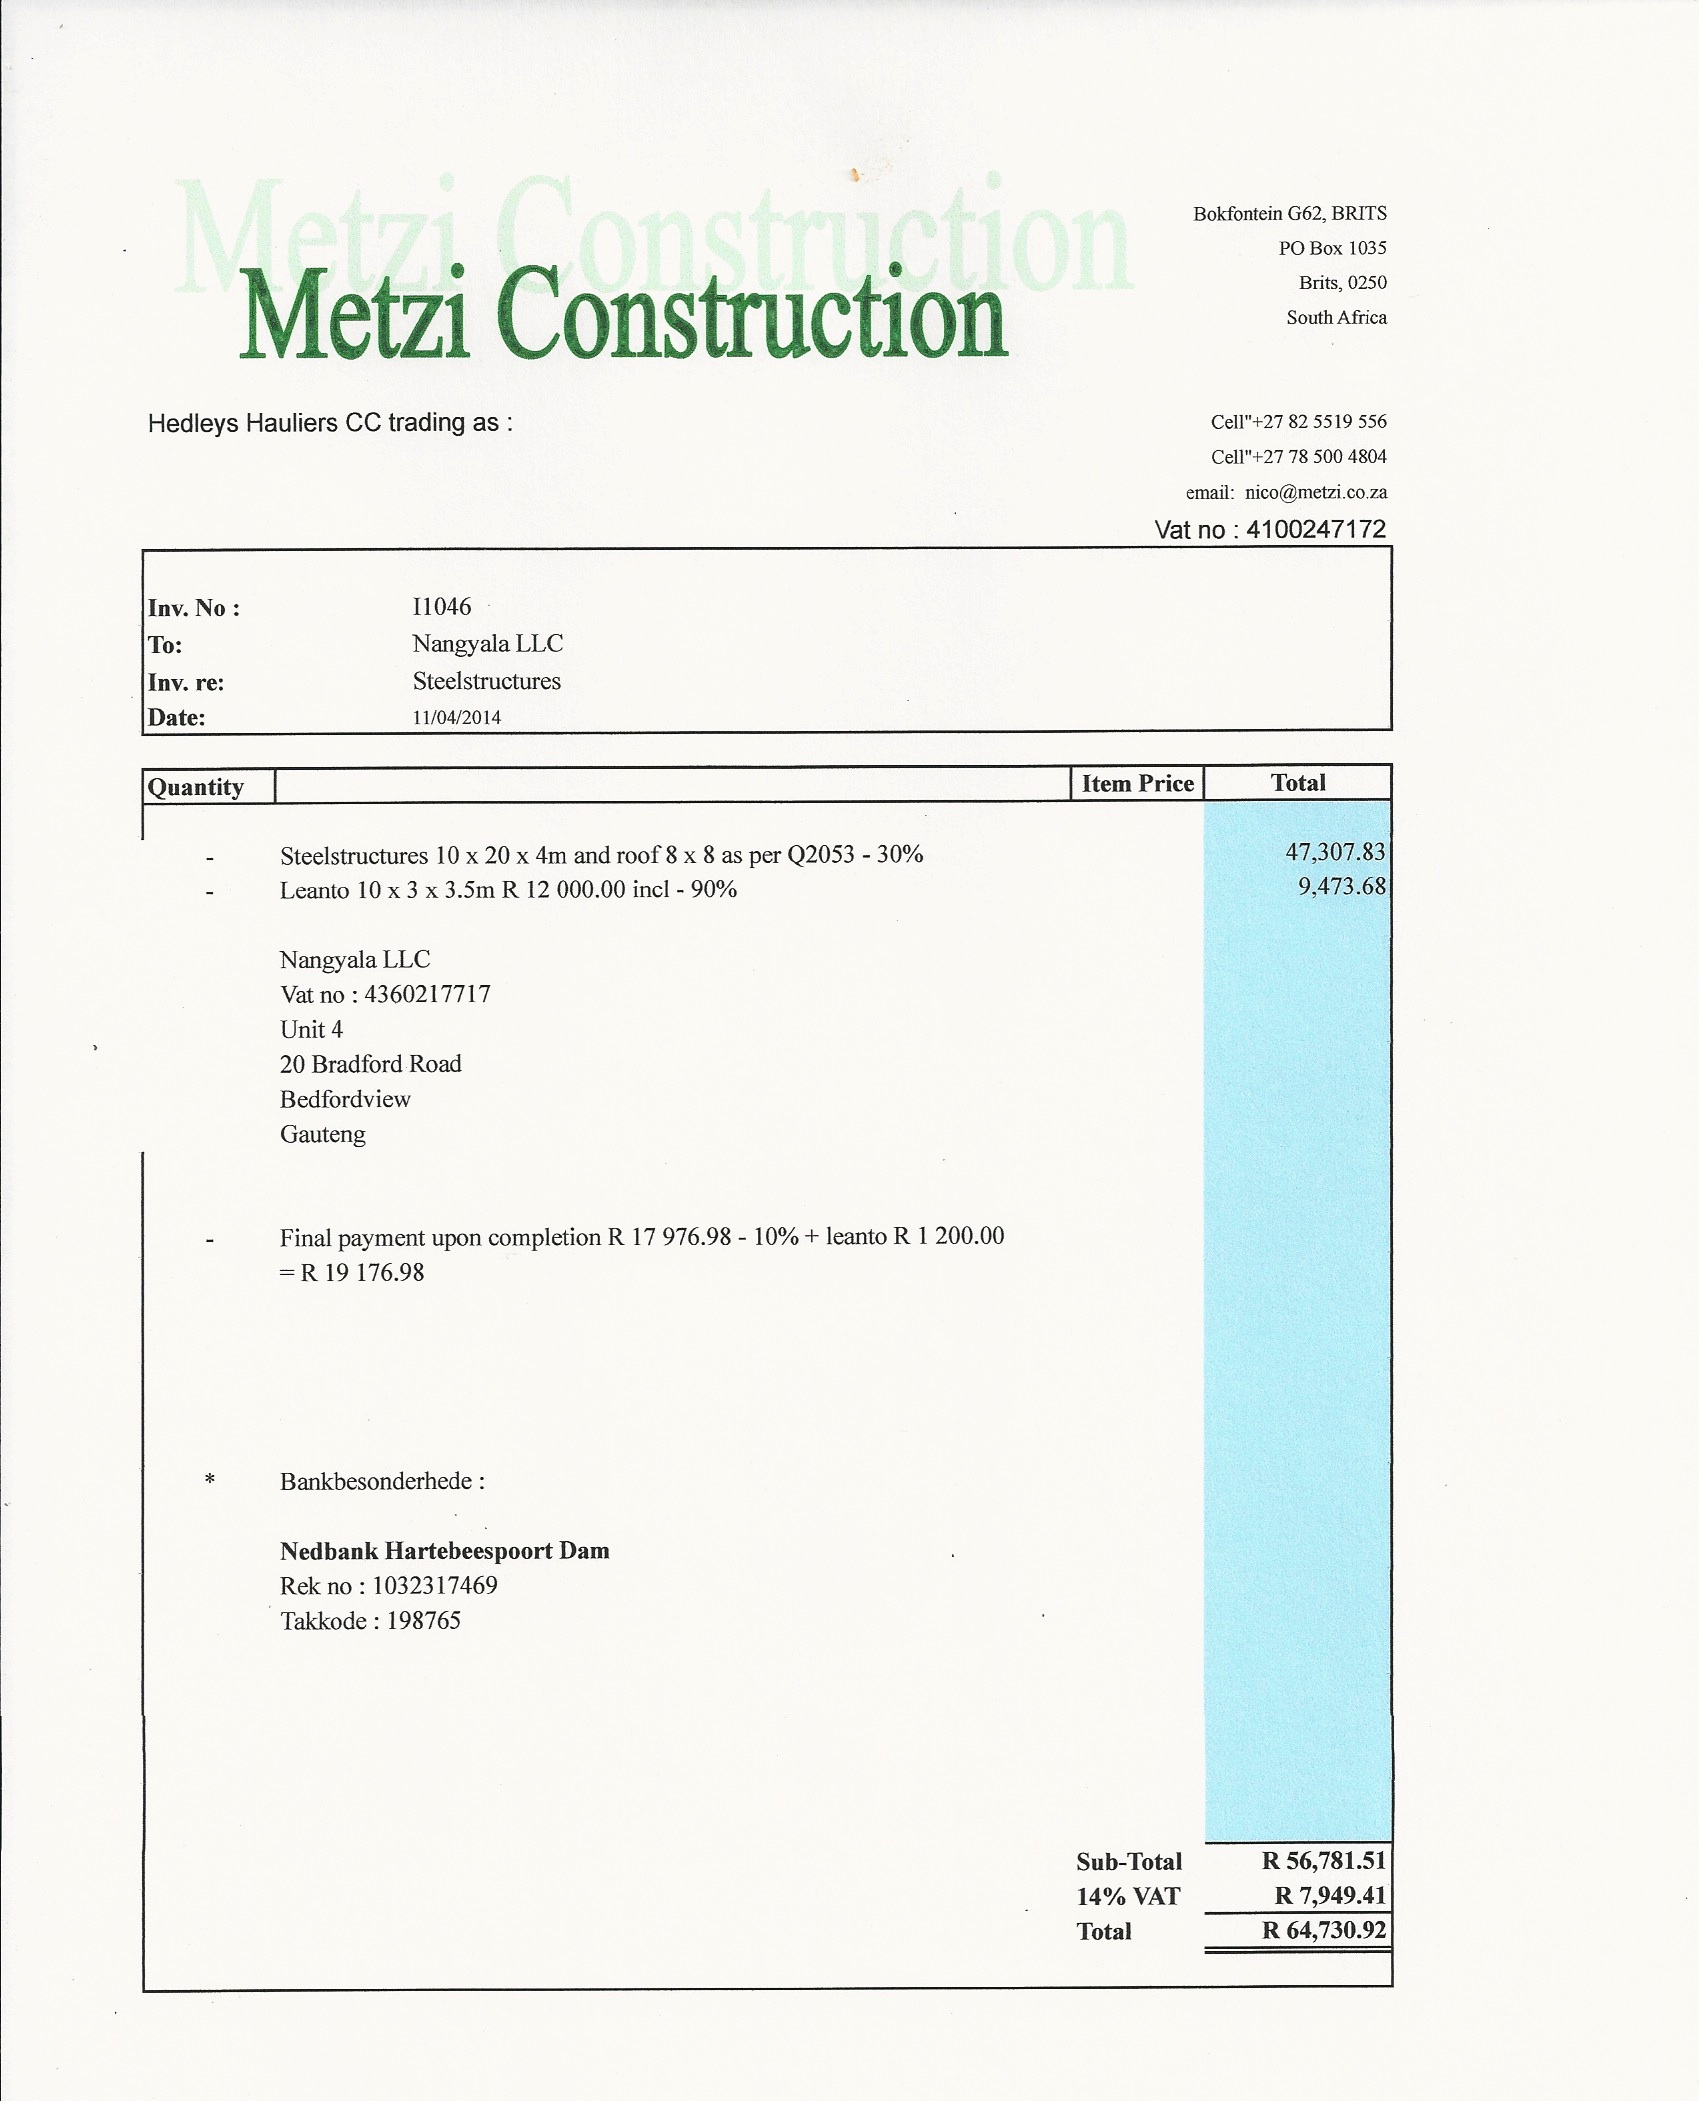 Second payment to Metzi Construction_4.jpg